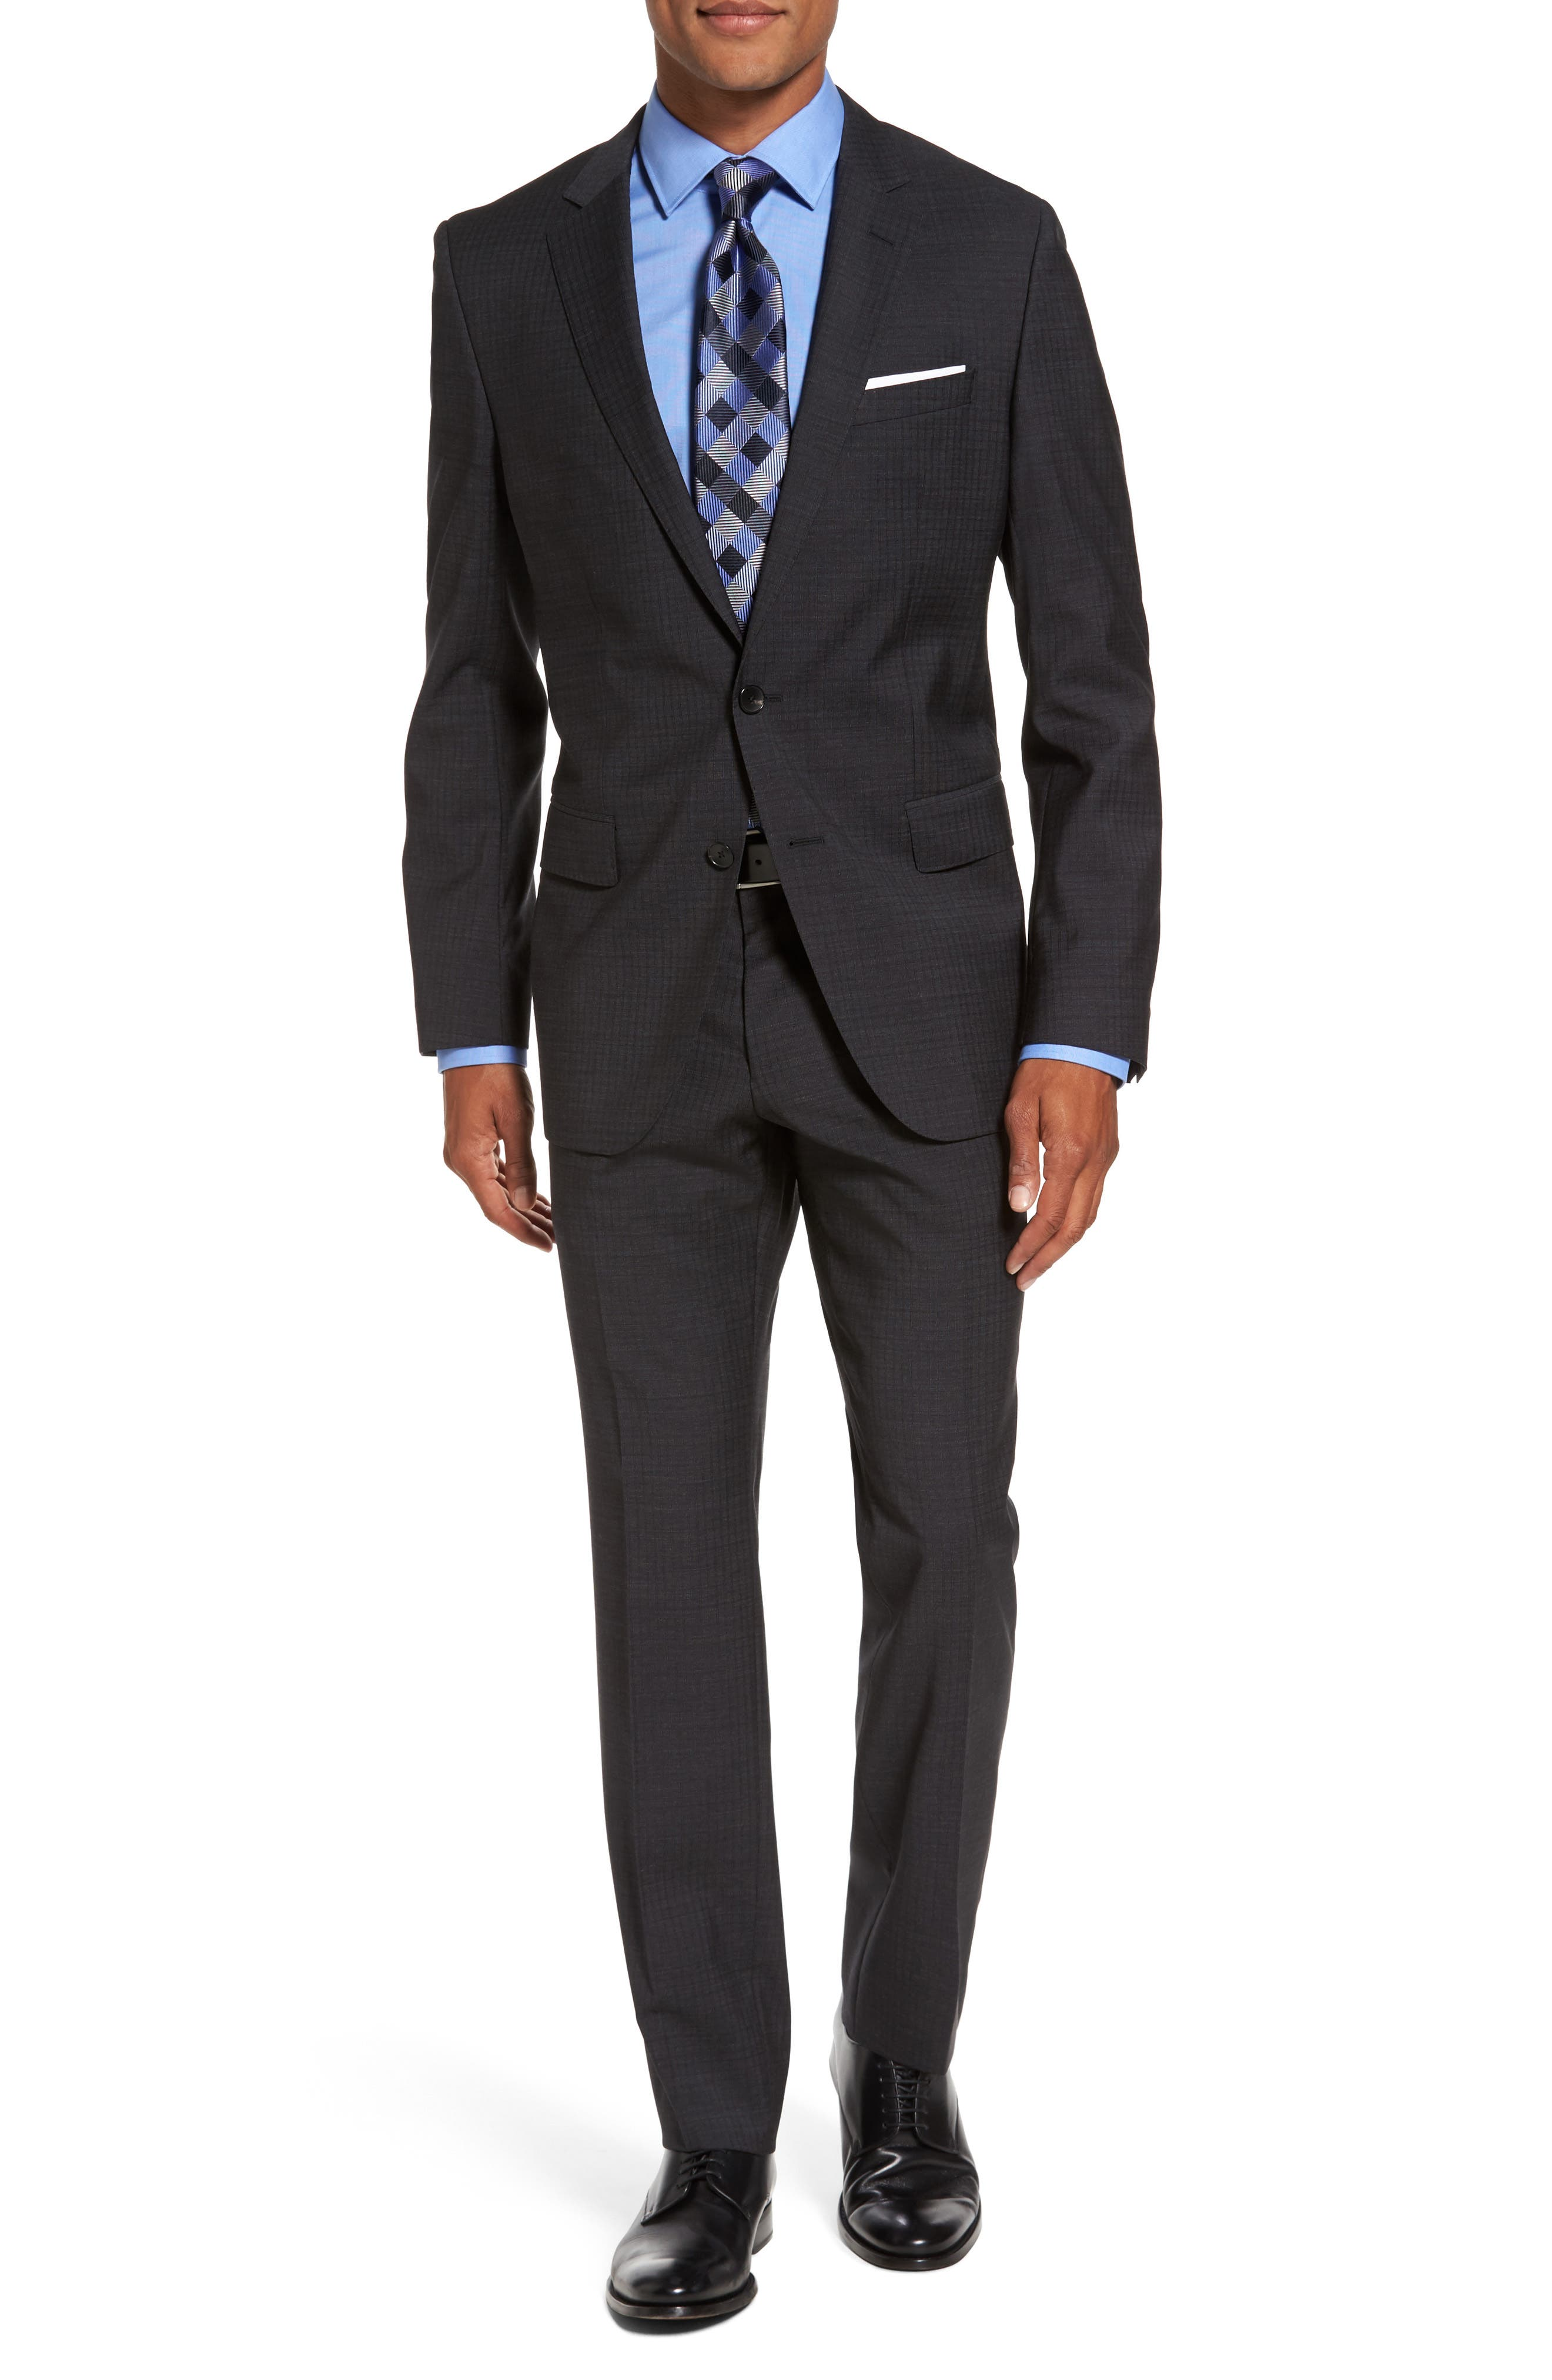 Main Image - BOSS Huge/Genius Trim Fit Check Wool Suit